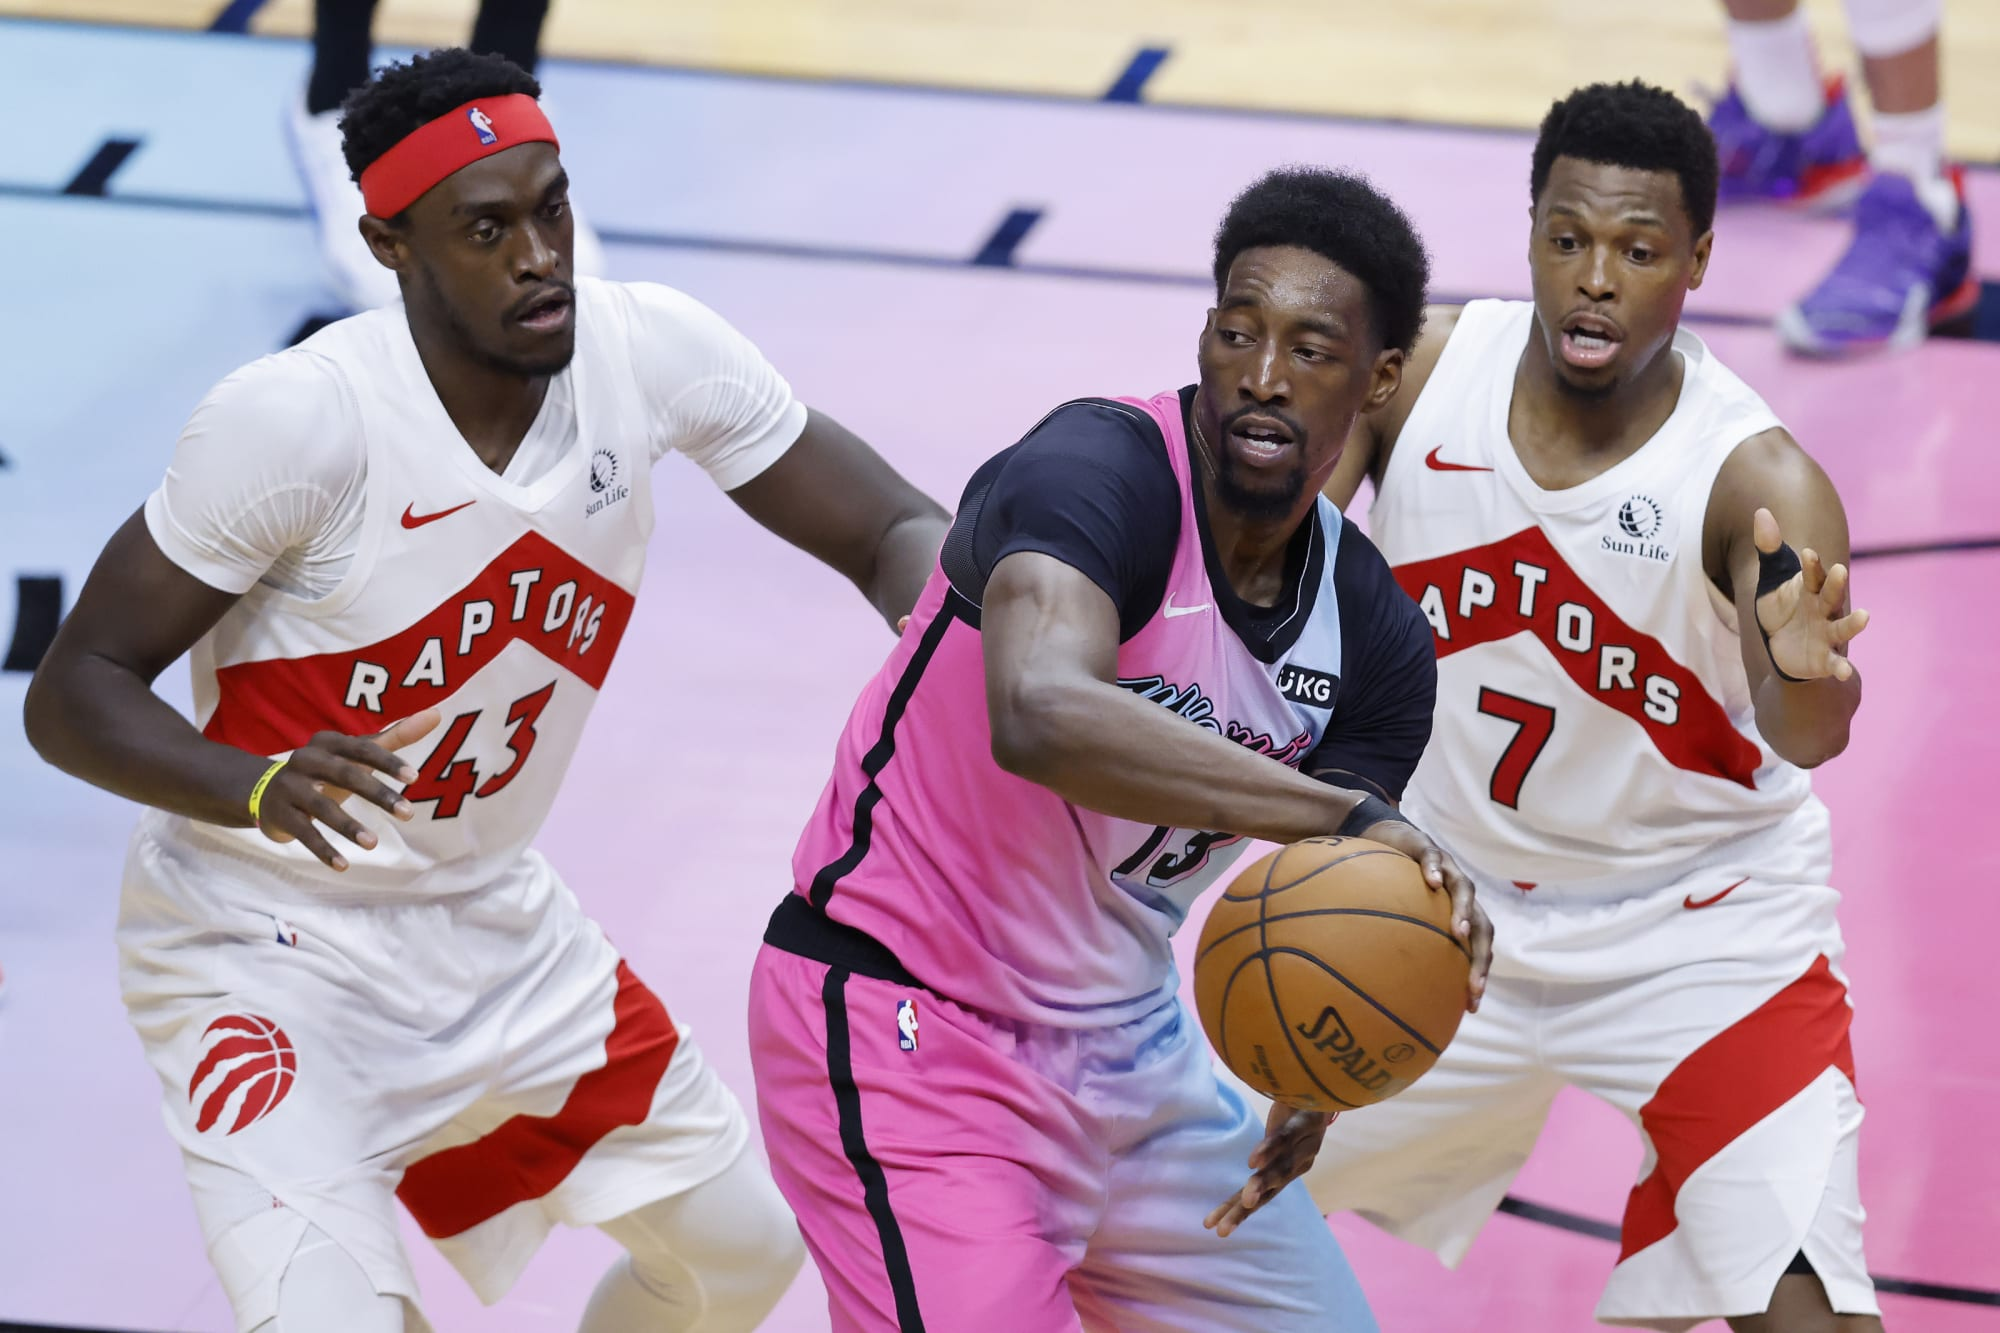 Raptors are having success against the East's elite teams